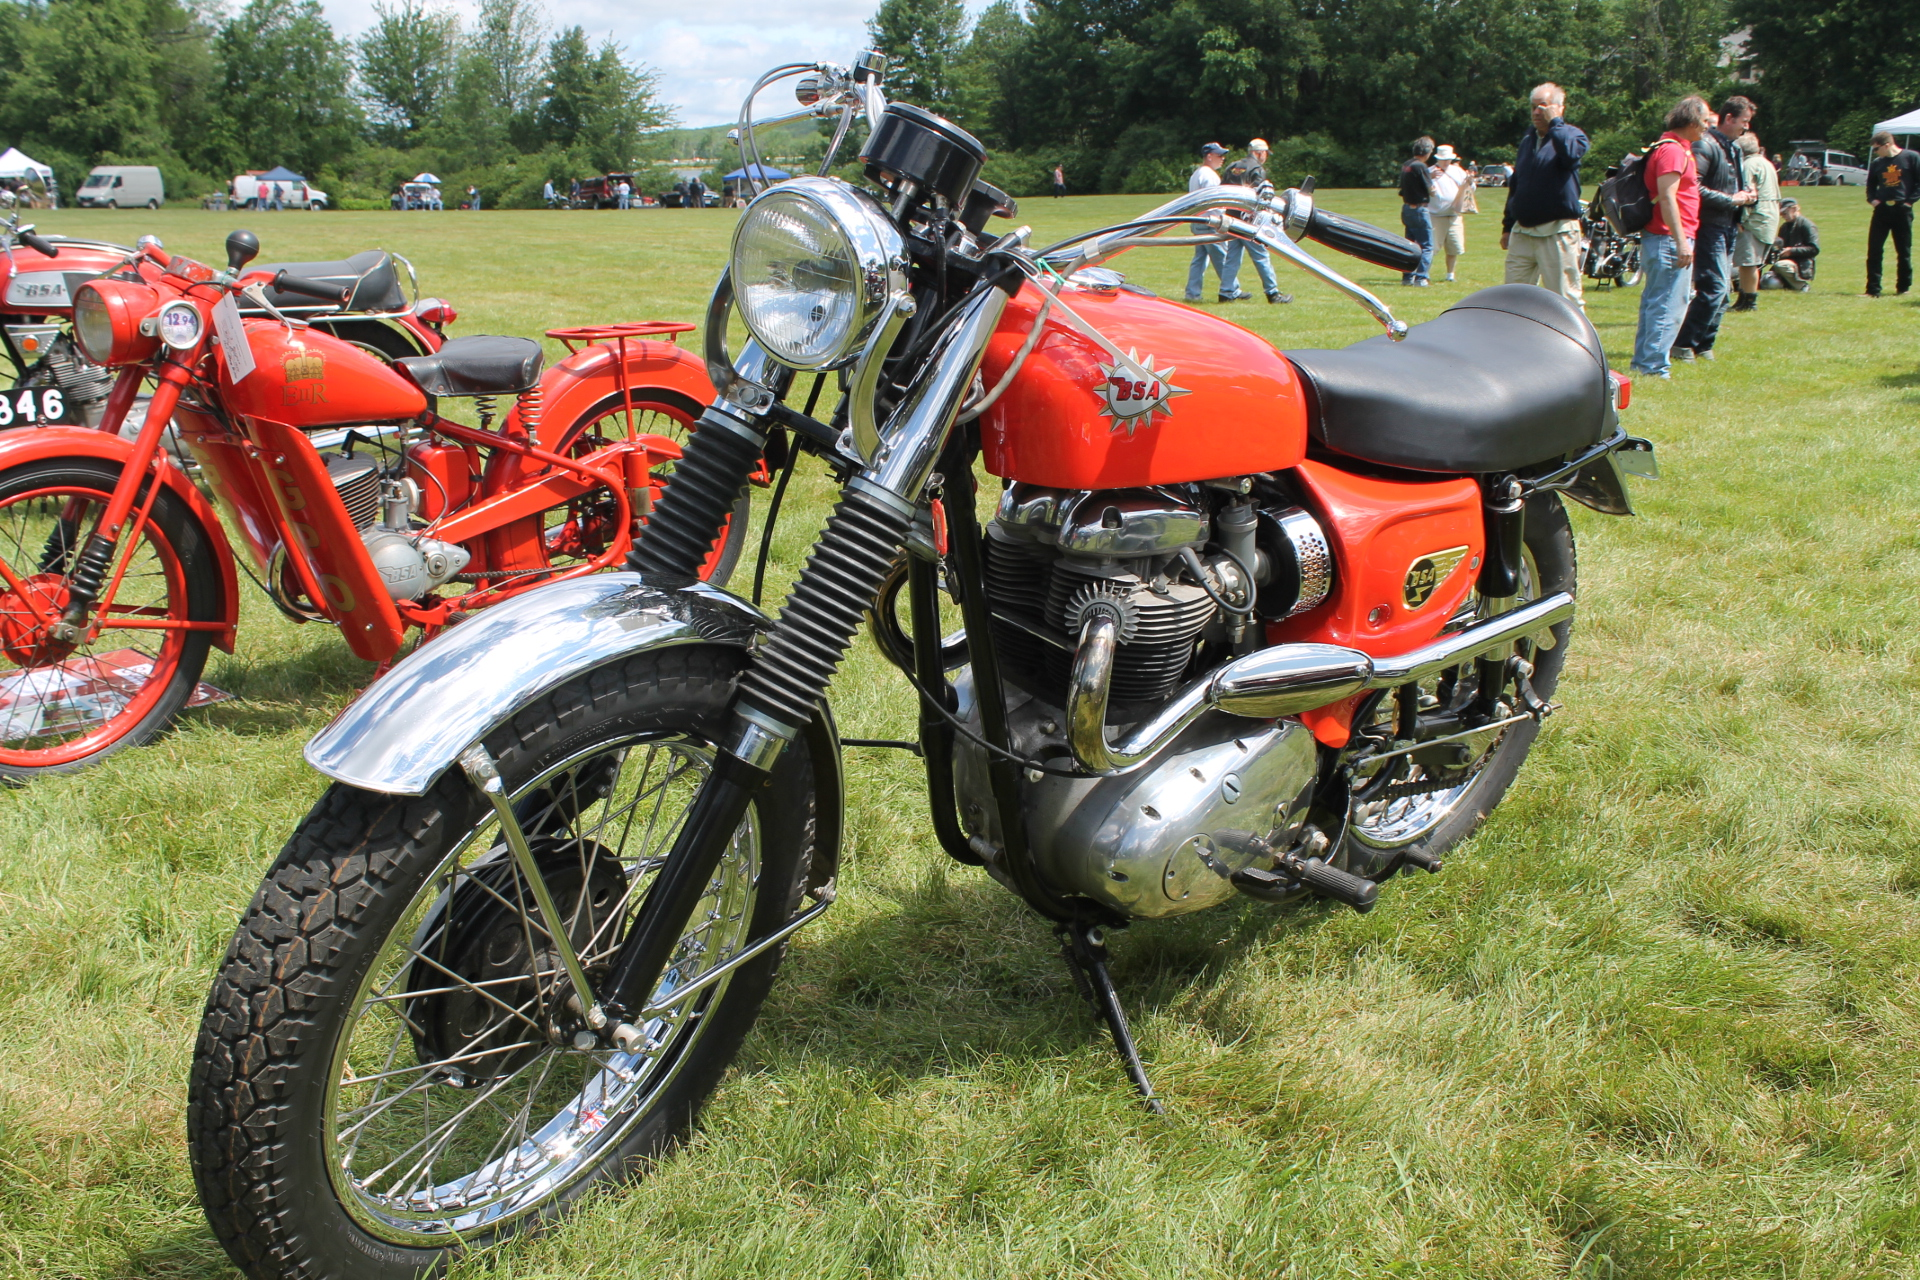 Bsa Motorcycle Wiring Diagram Library Engine For Pinterest 1966 Hornet